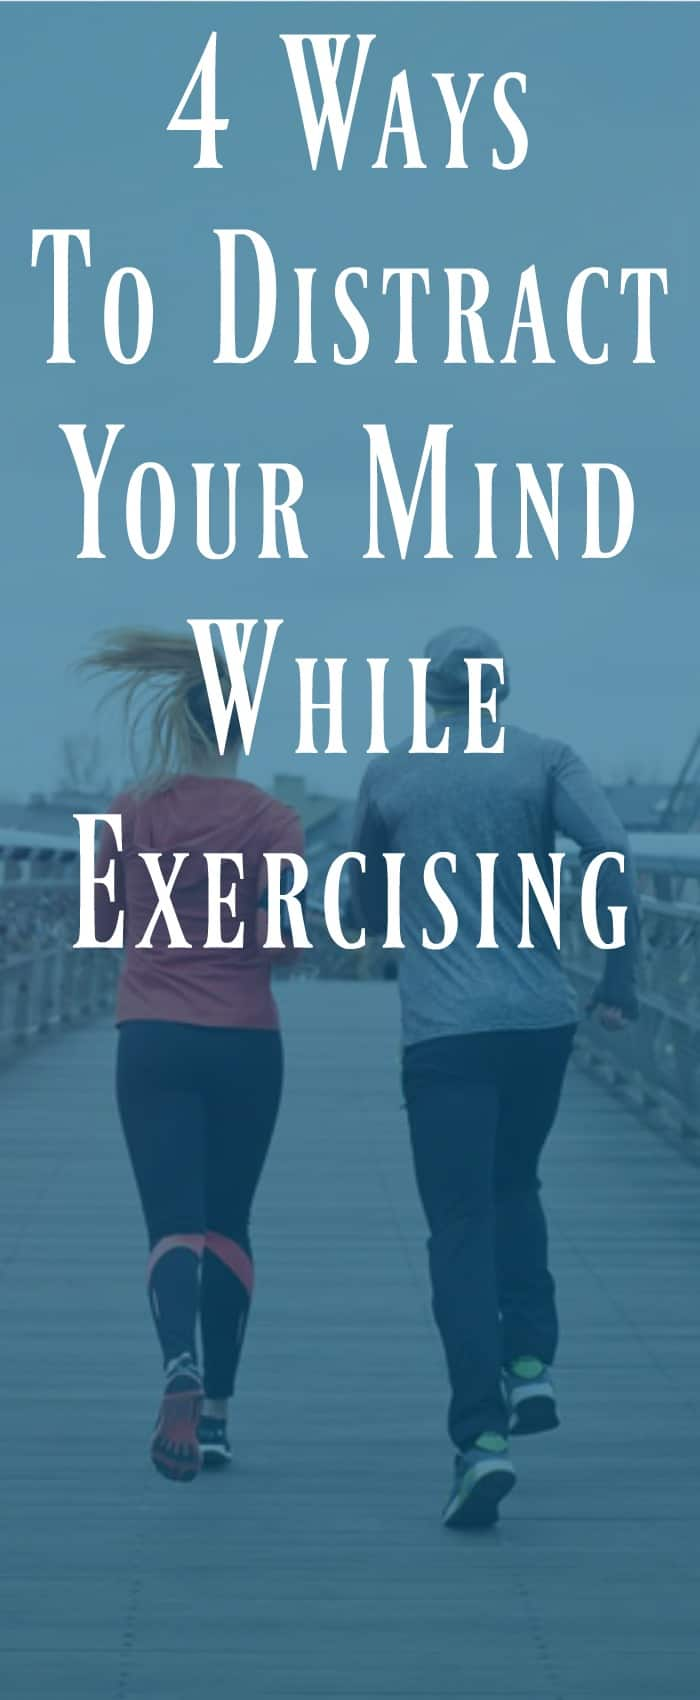 4 Ways to Distract Your Mind While Exercising